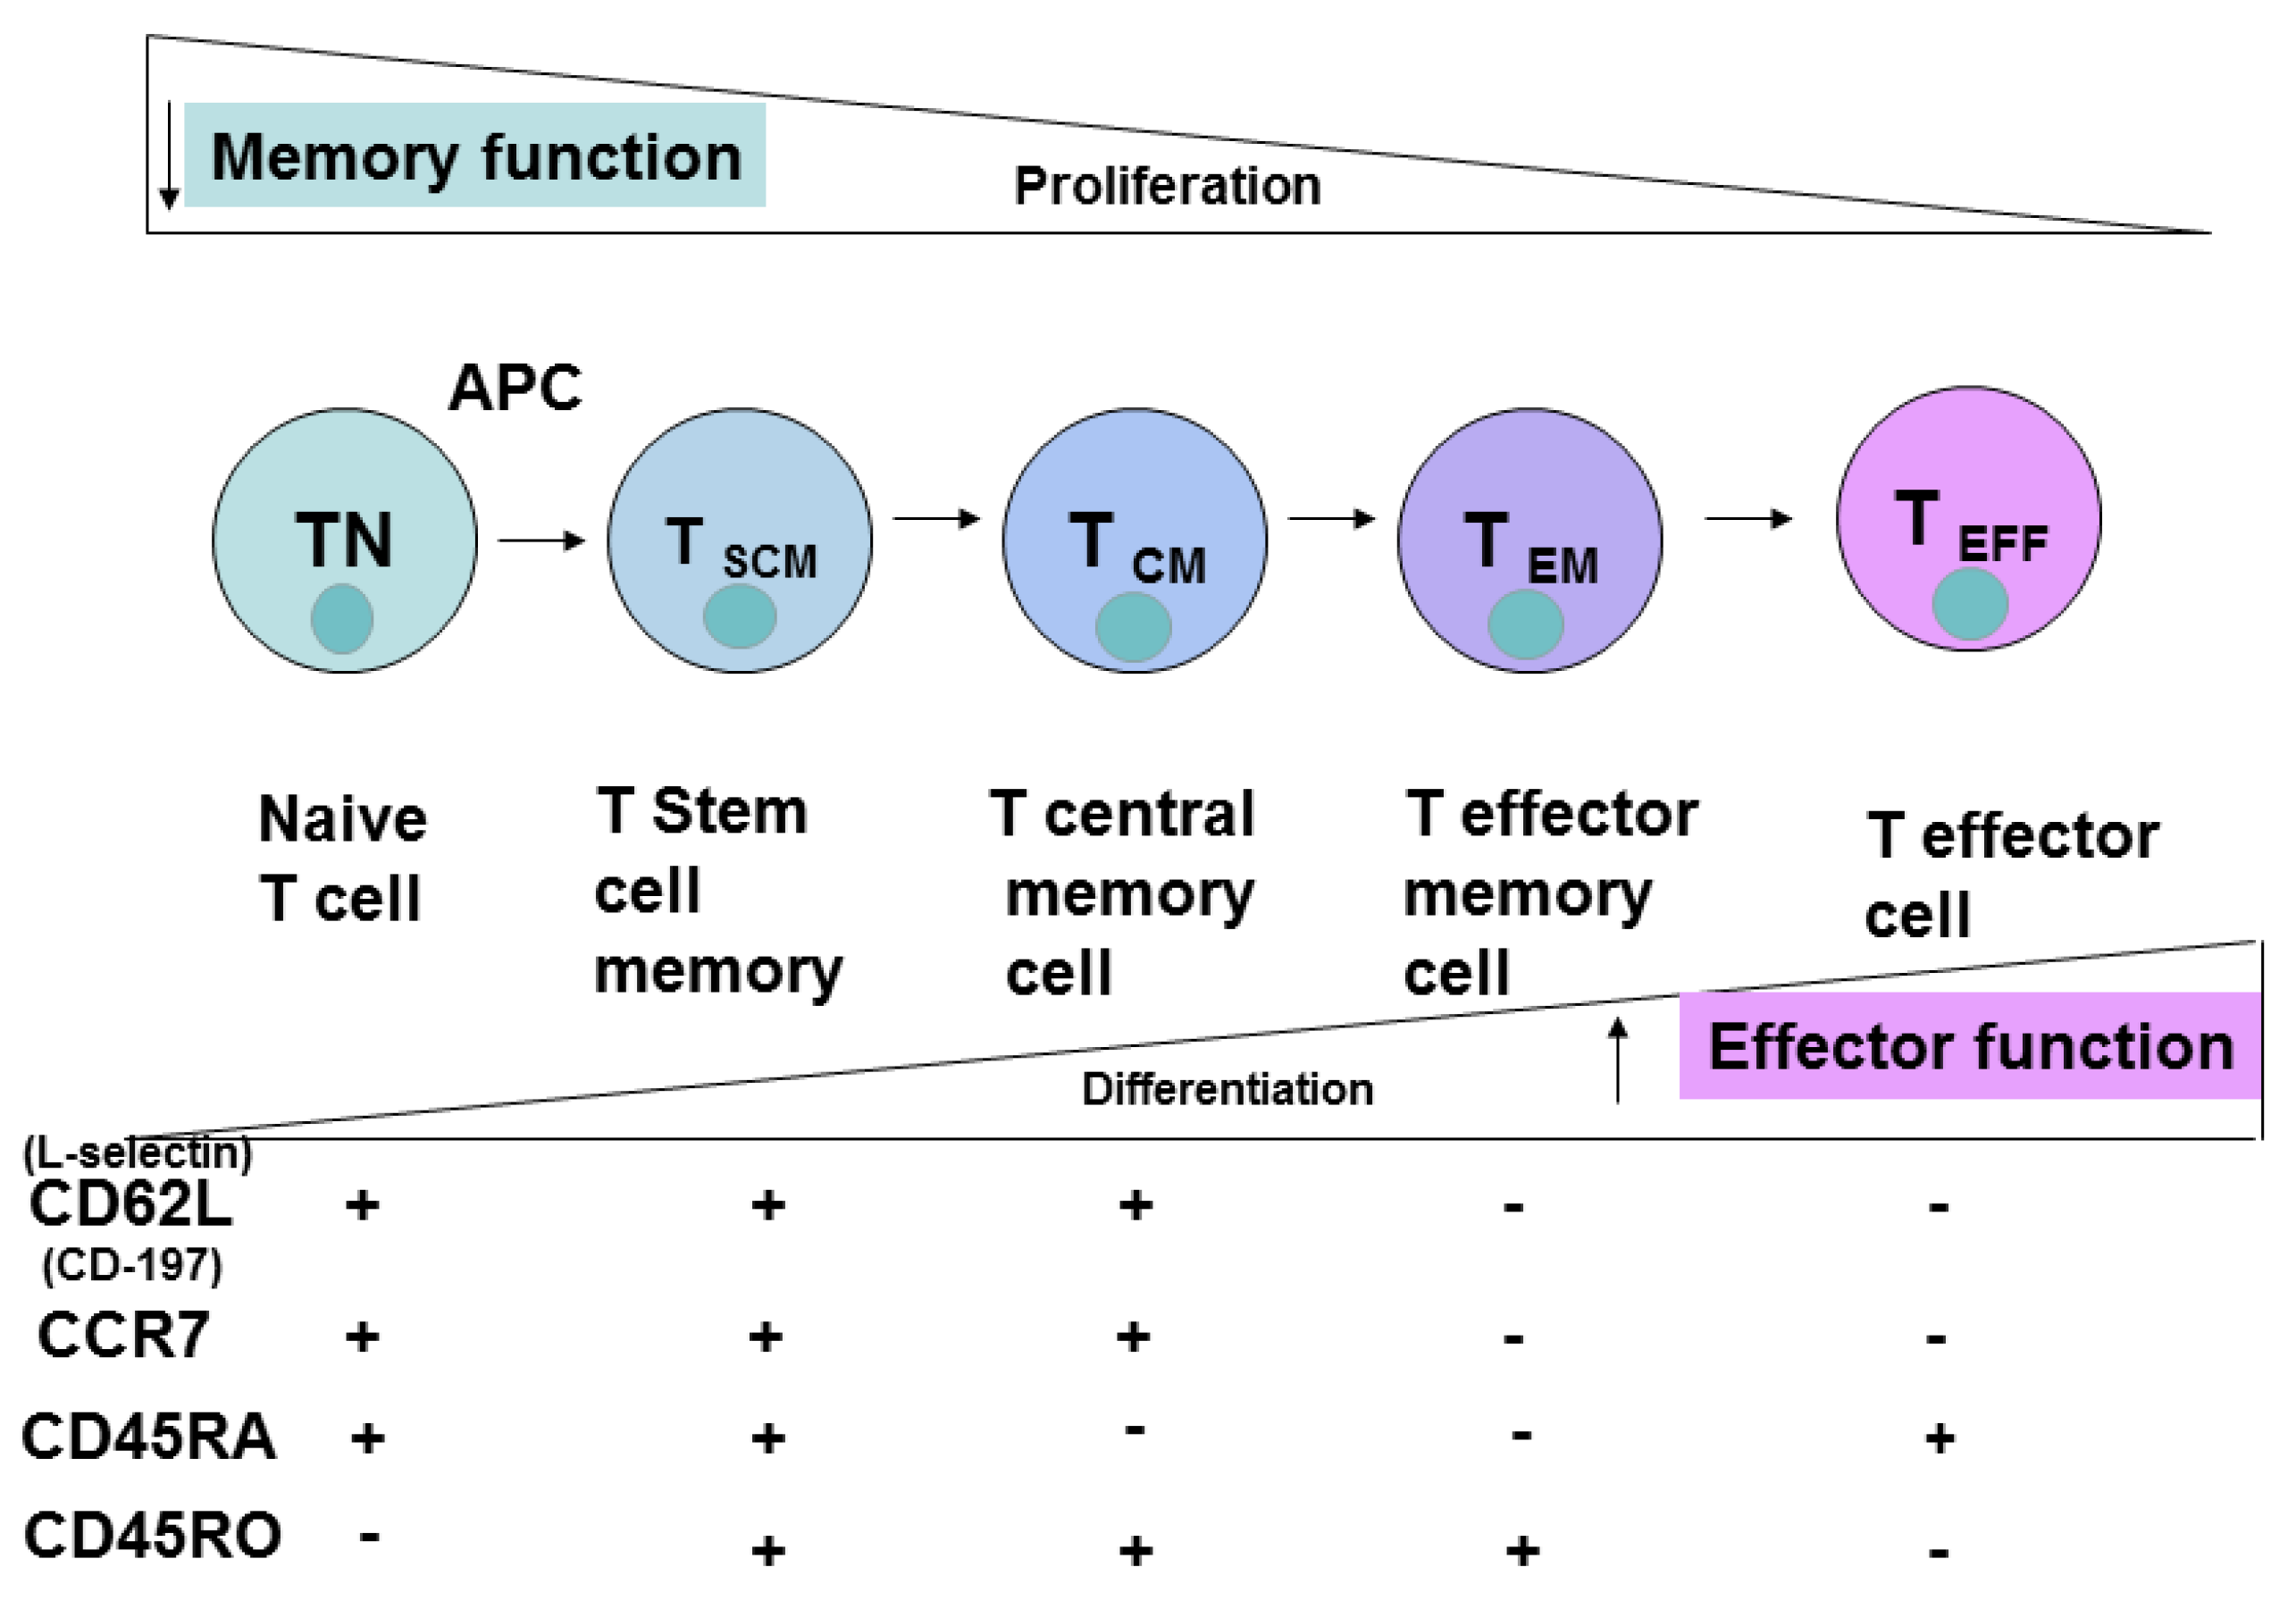 cd8 effector and memory t cells differentiation Naïve cd4+ and cd8+ t cells enter the circulation effector and memory cells effector t cells migrate to sites of infection cd4+ t cells 20 th differentiation:.